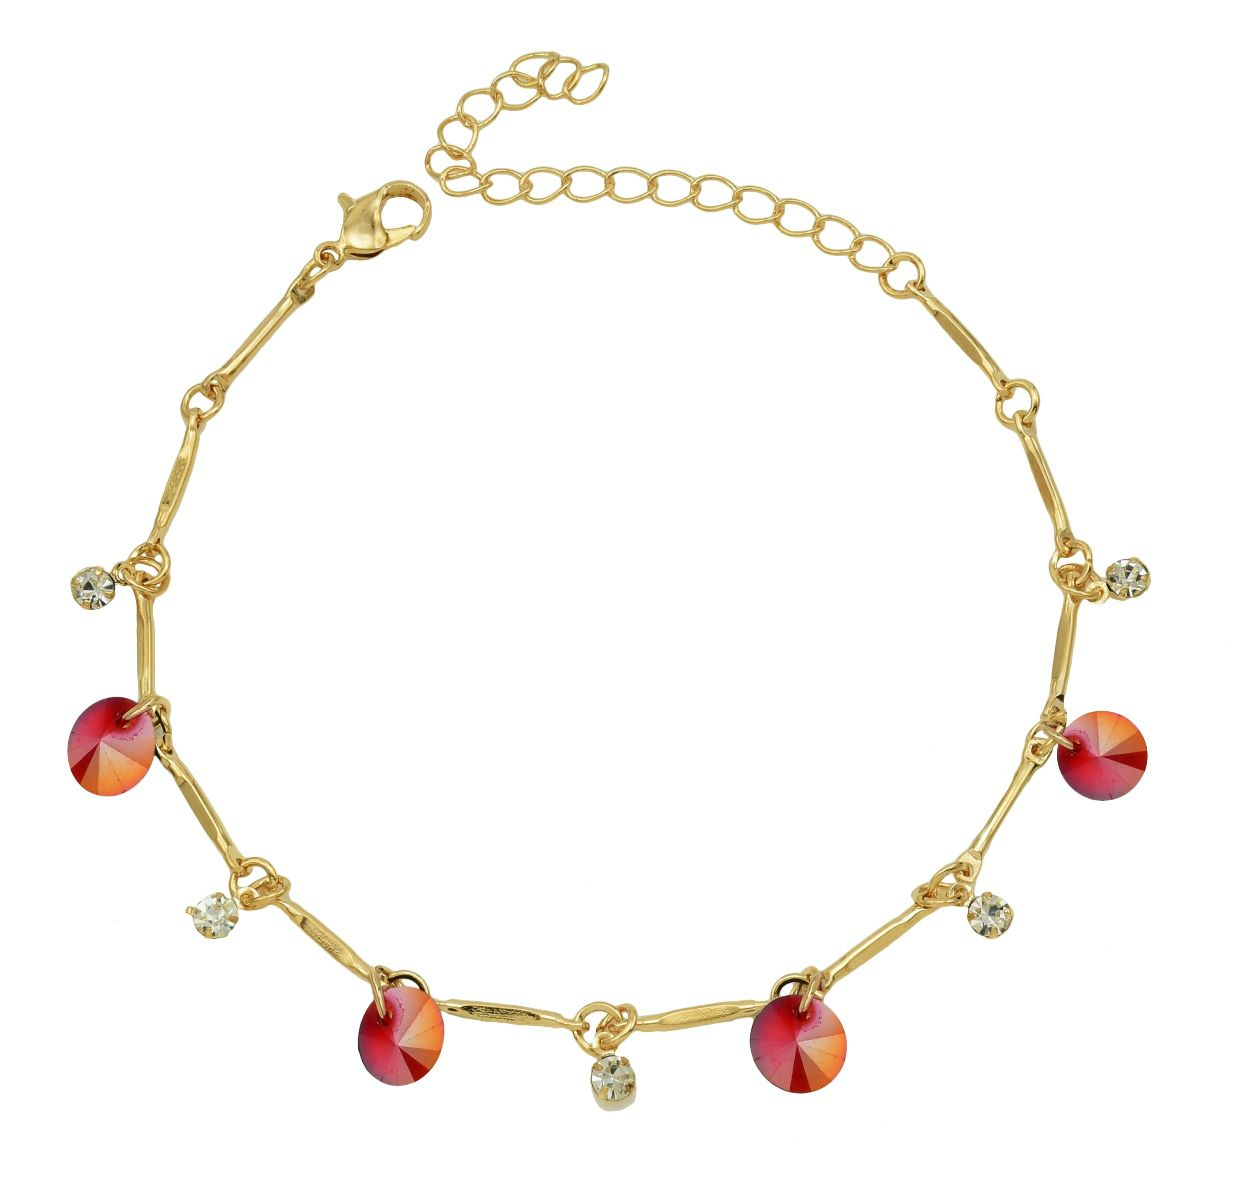 High Trendz Trendy Light Weight Gold Plated Anklet With Hanging Red Crystal For Women And Girls